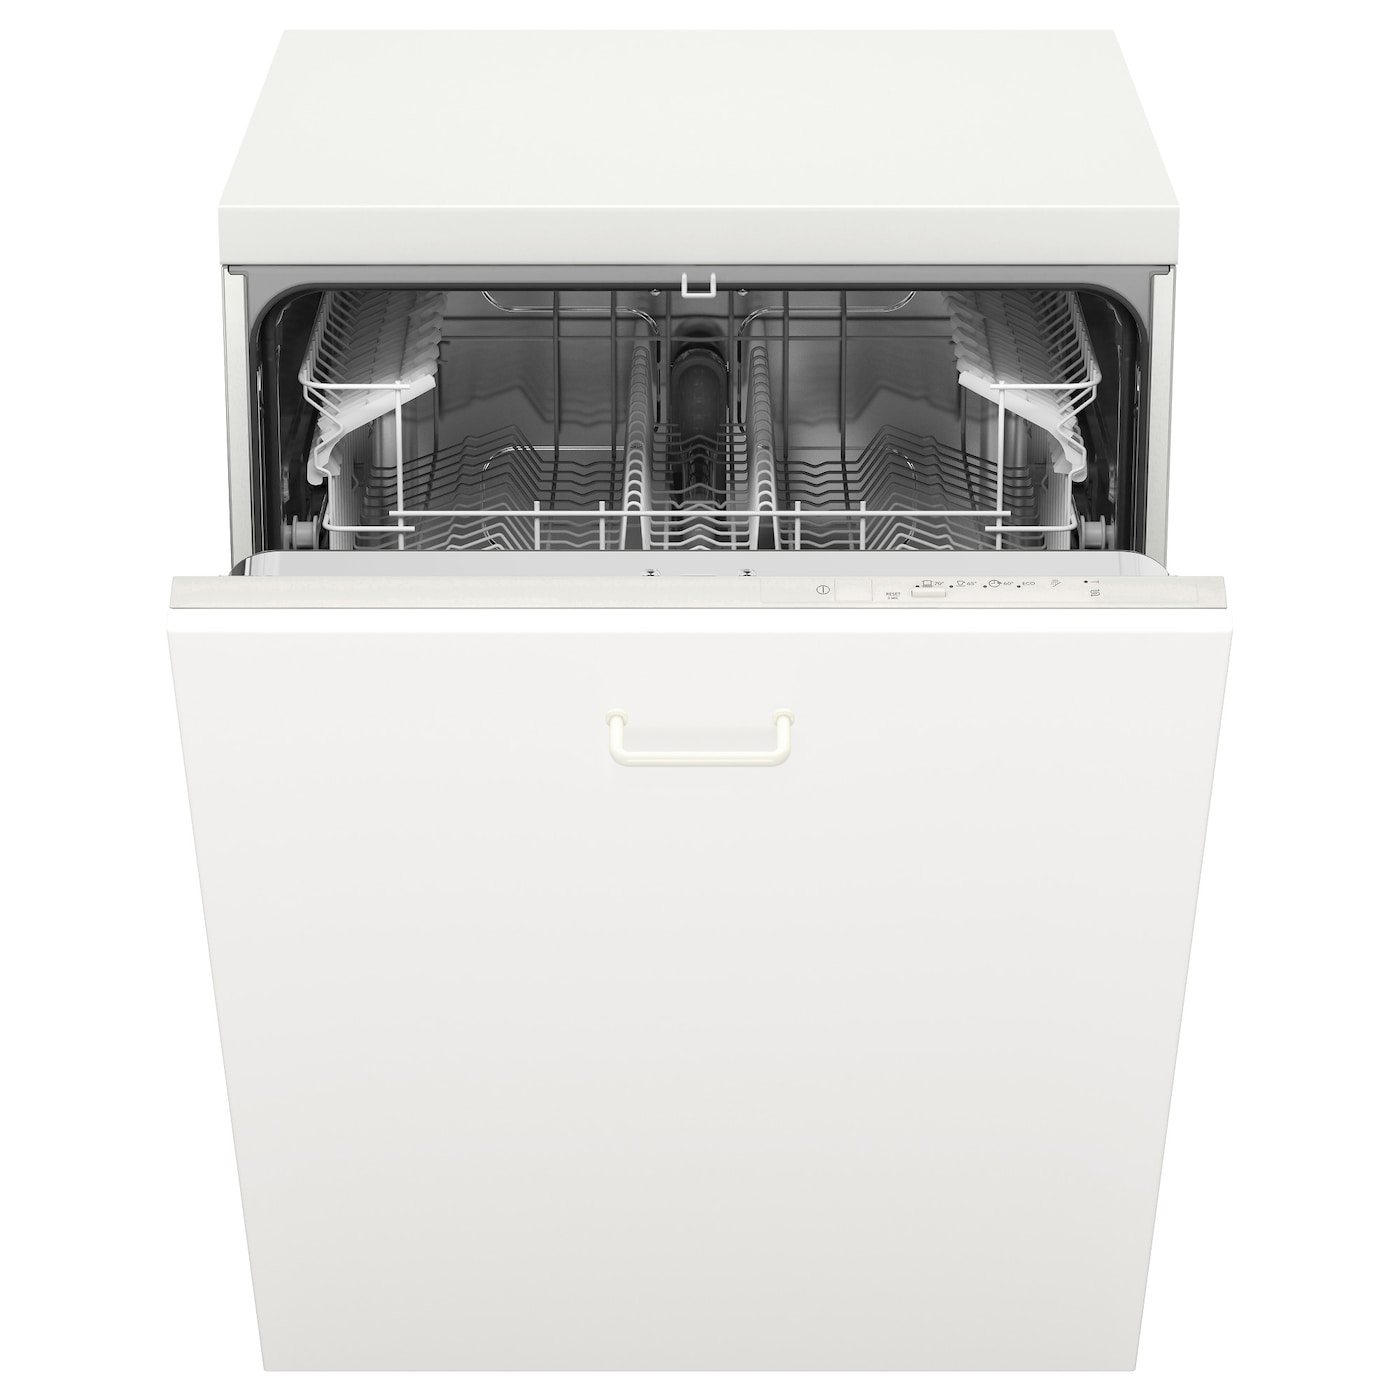 IKEA LAGAN integrated dishwasher 3 dish programs; choose program according to type of dish and need.